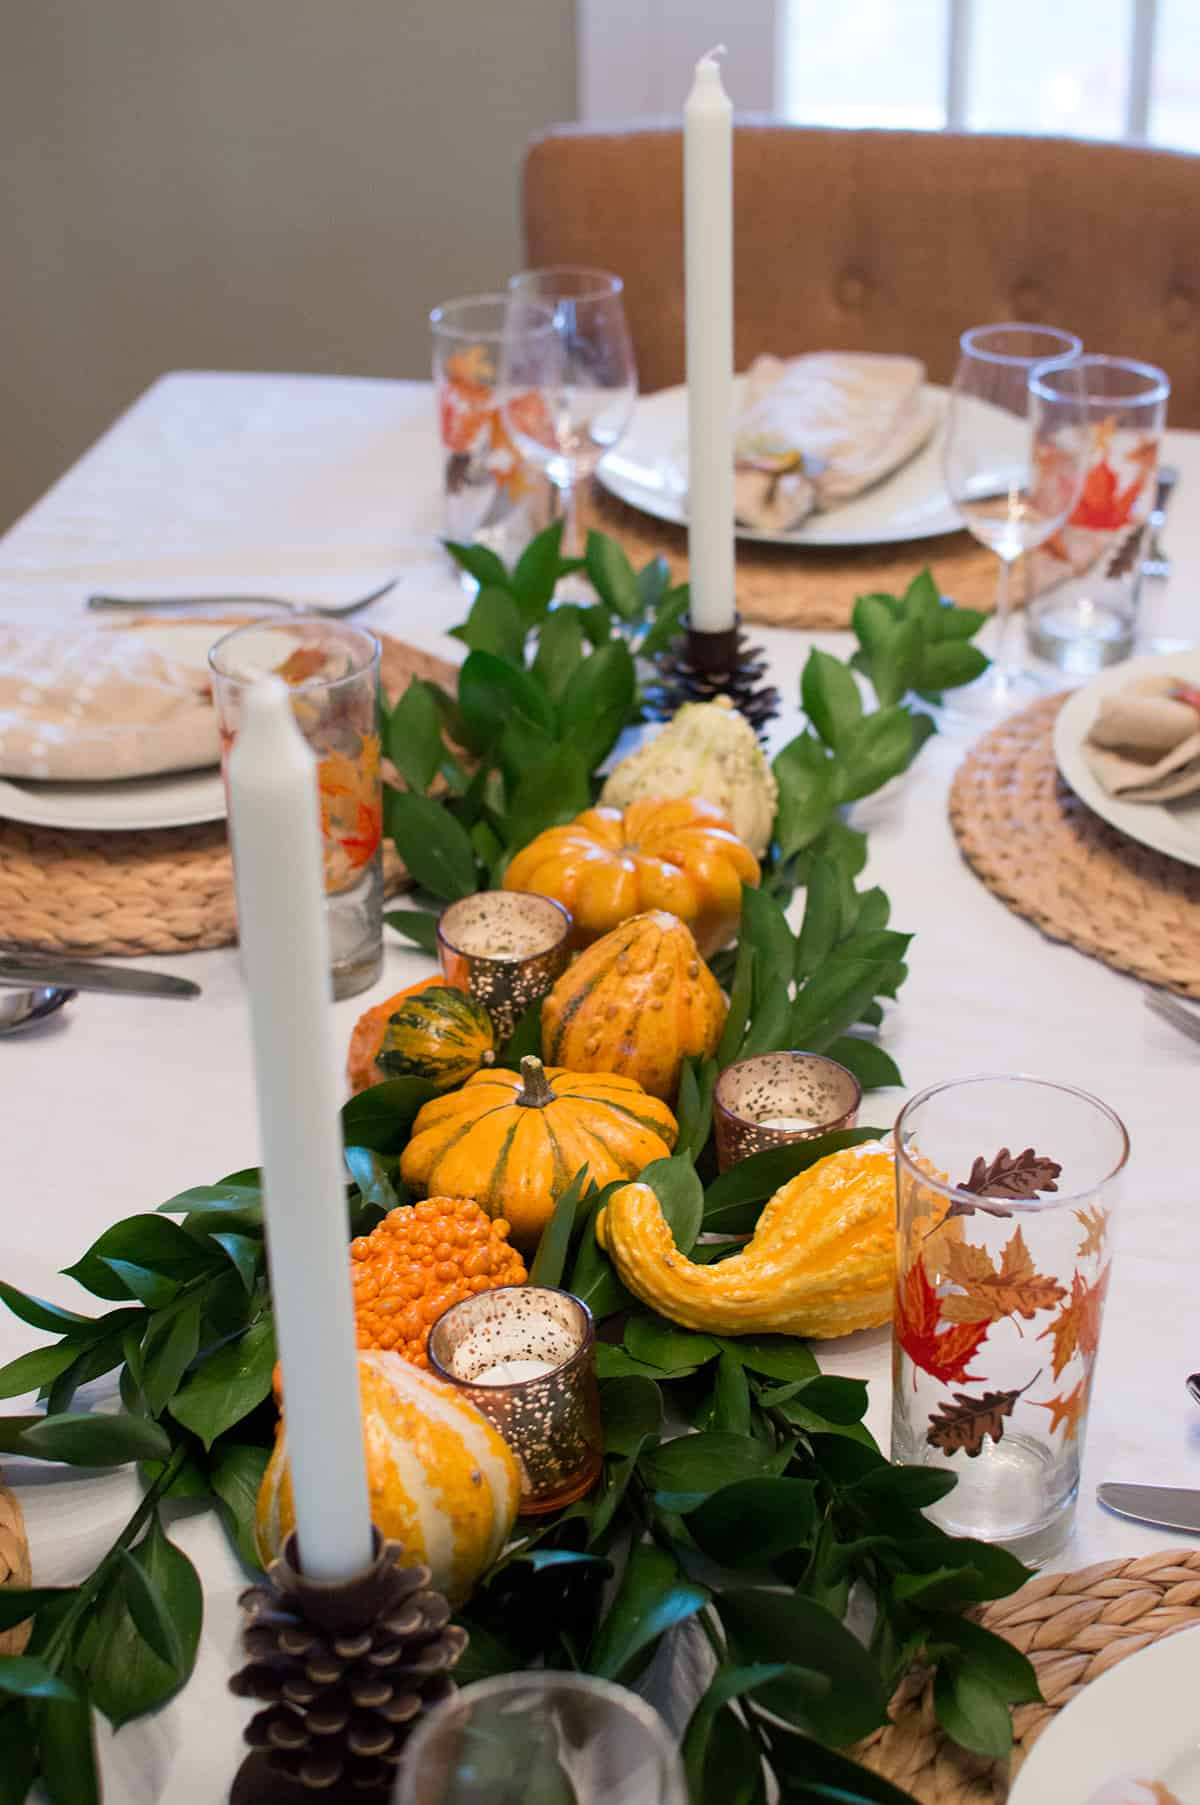 Centerline view of the Thanksgiving centerpiece